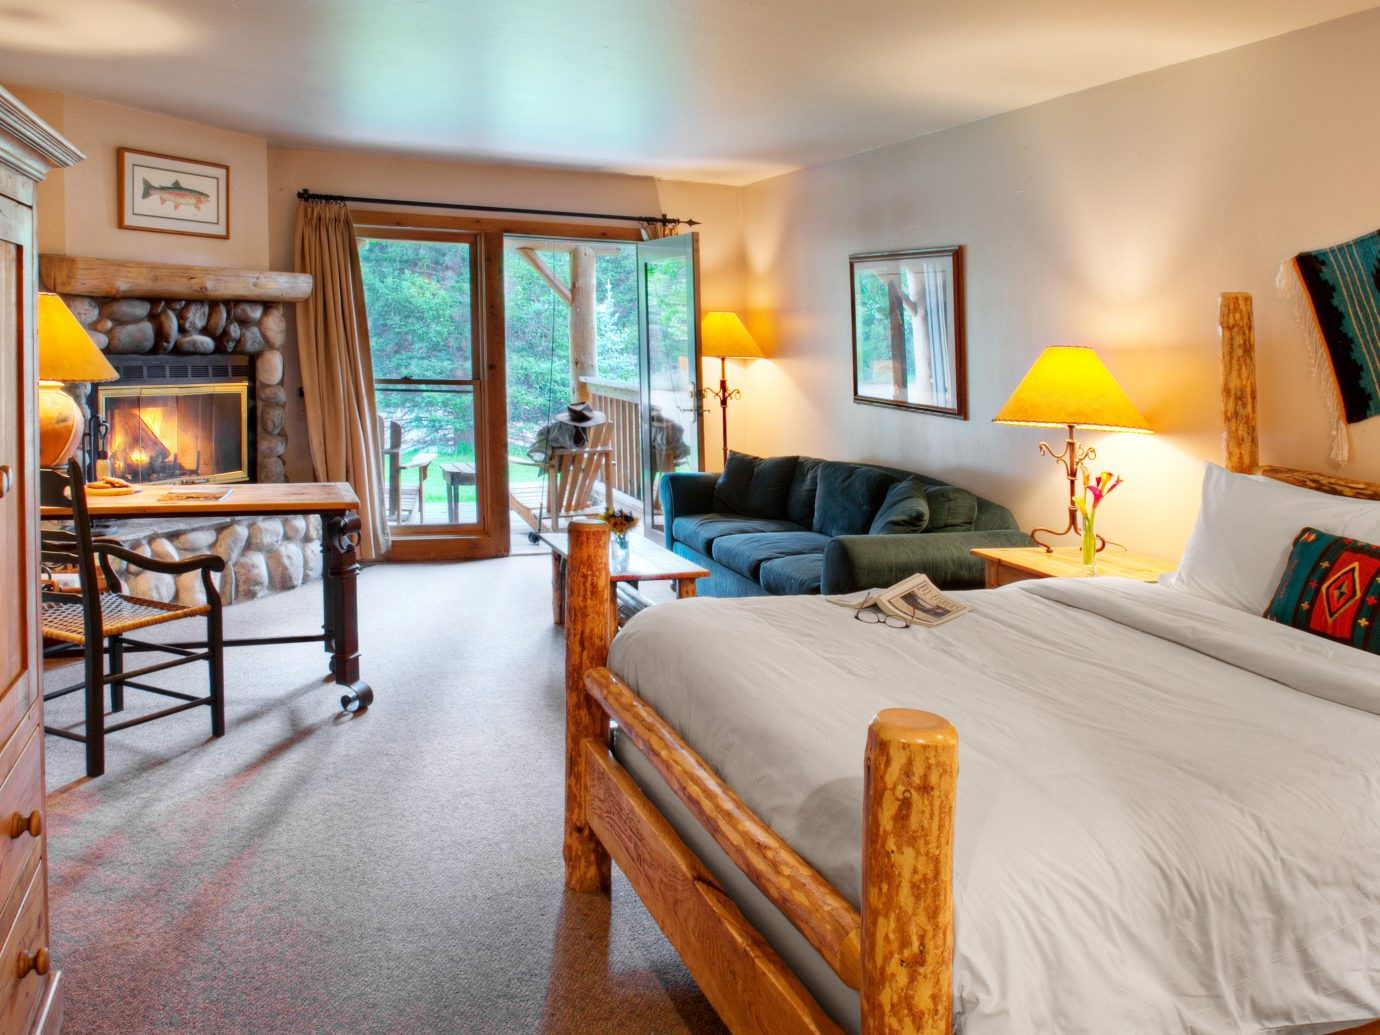 Balcony Bedroom Country Fireplace Glamping Hotels Living Lodge Montana Outdoors + Adventure Patio Ranch Rustic Scenic views Trip Ideas indoor wall room floor bed property estate ceiling home Suite real estate cottage interior design Villa Resort living room furniture wood